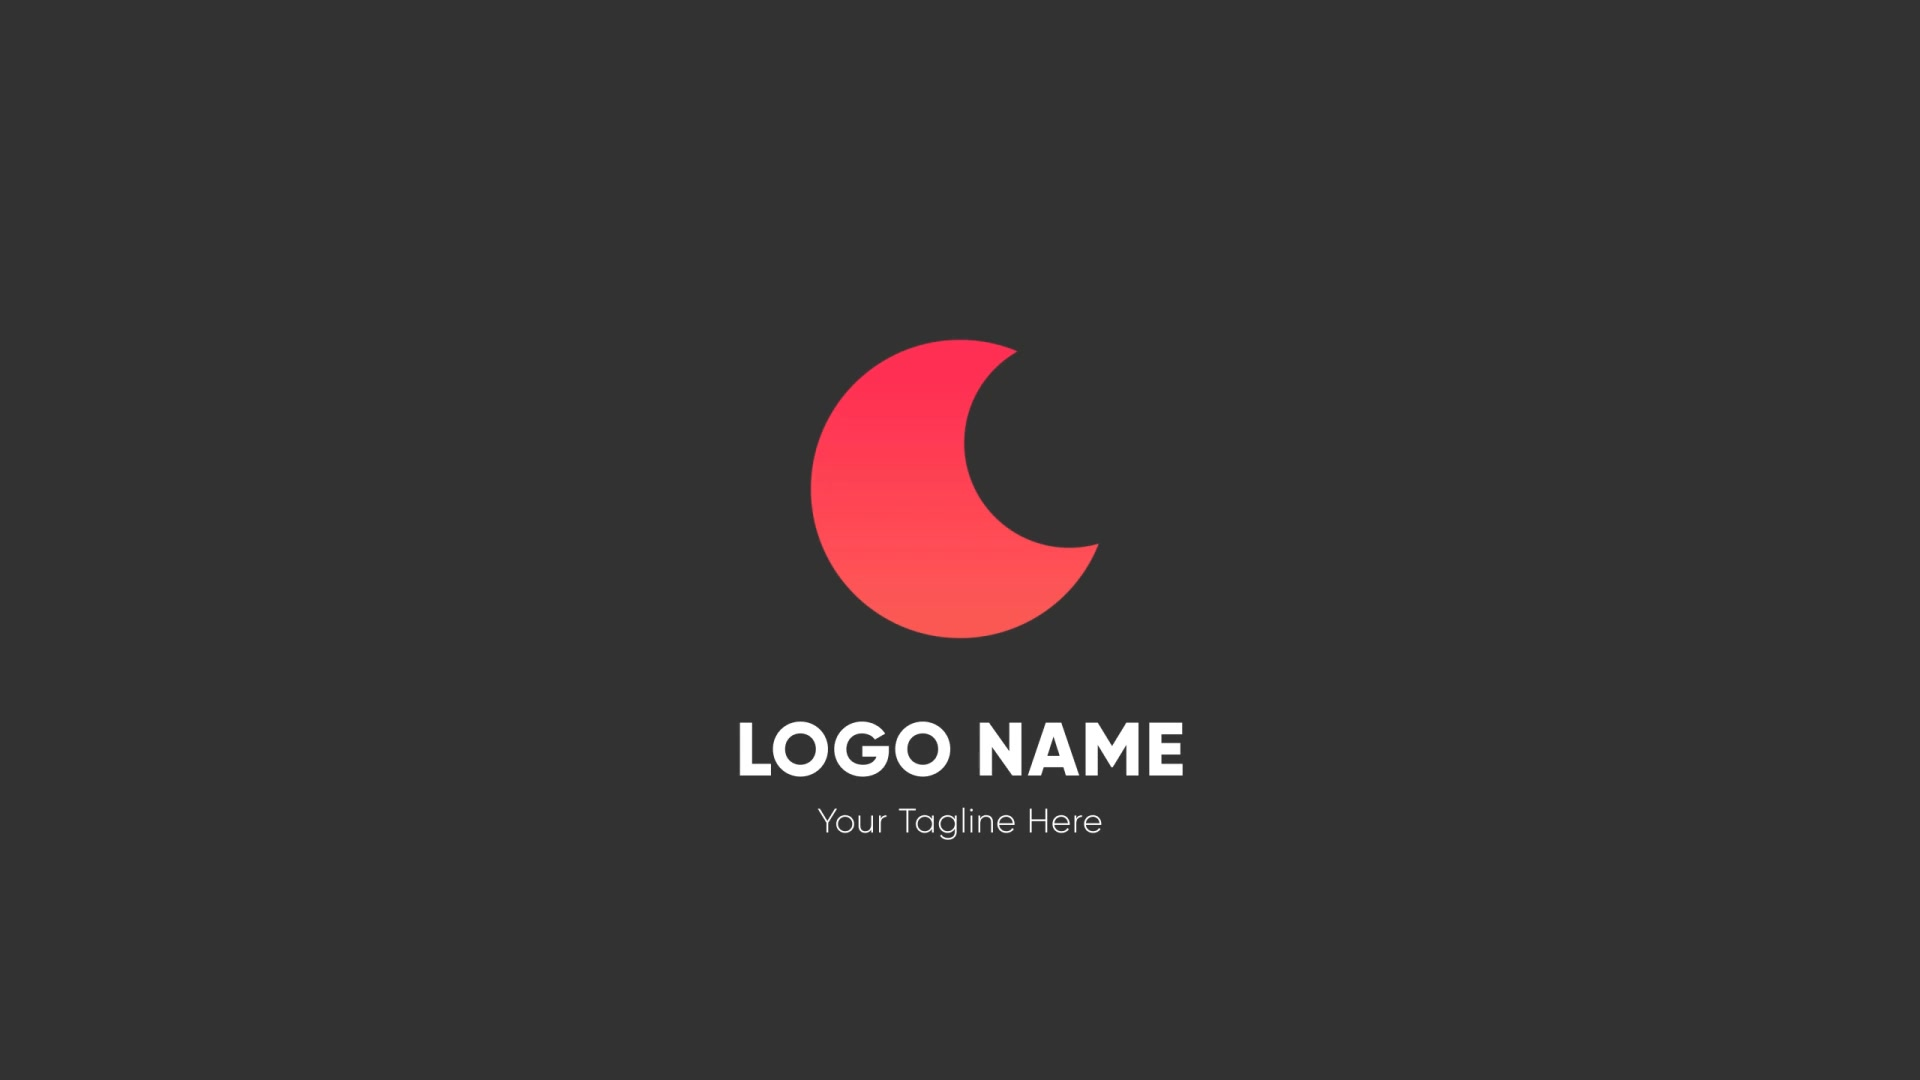 Minimal Shape Logo Videohive 26434864 After Effects Image 8